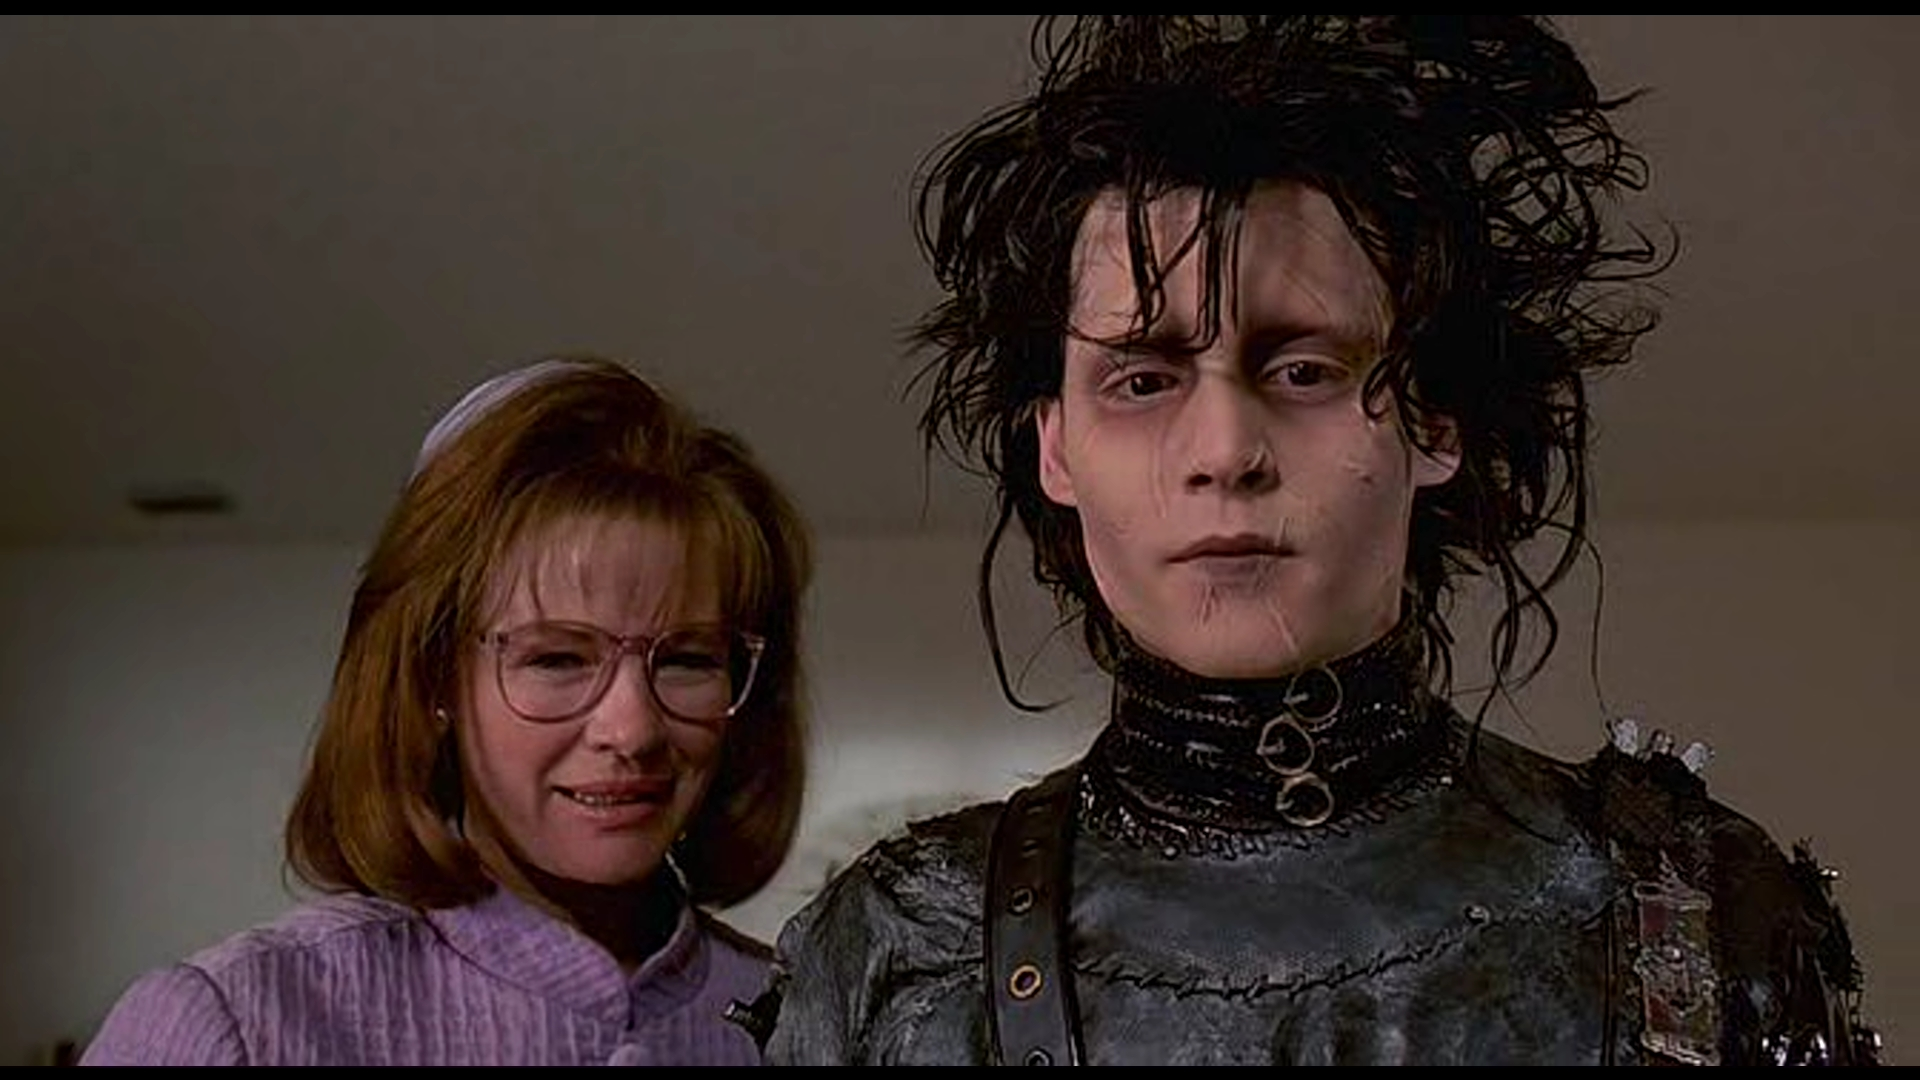 Free Download Edward Scissorhands Wallpapers Hd 1920x1080 For